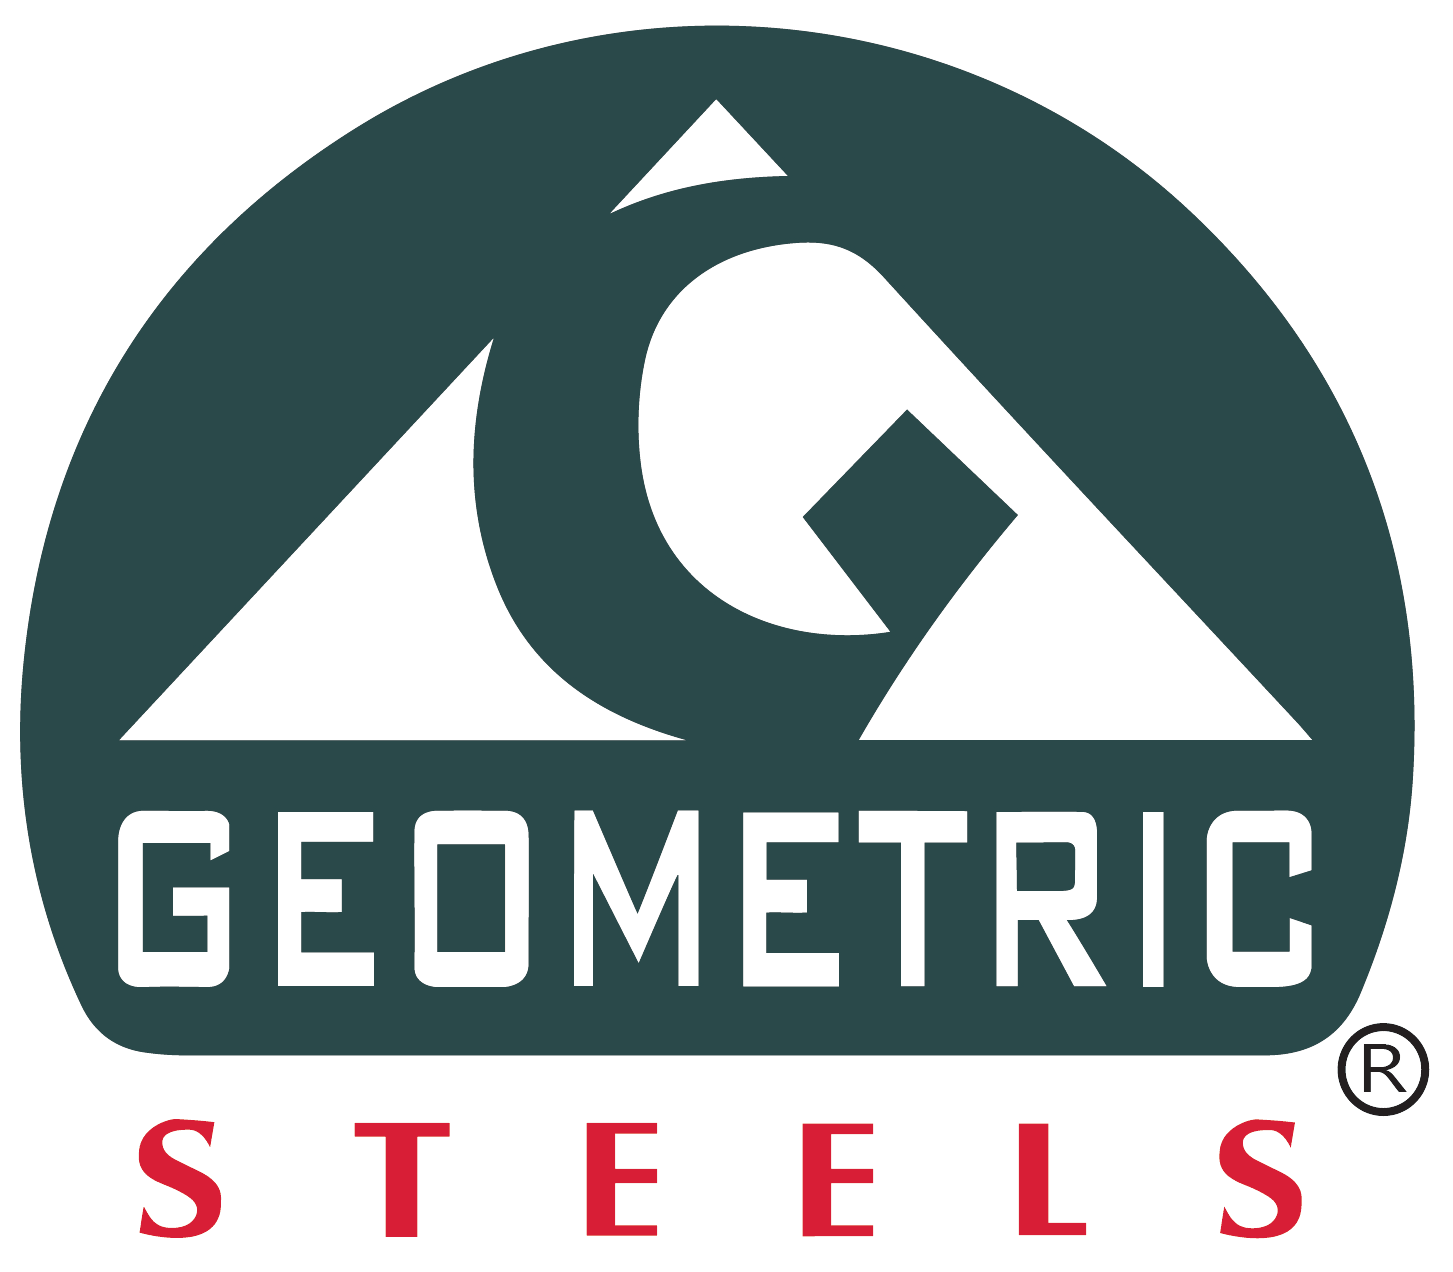 Geometric steels